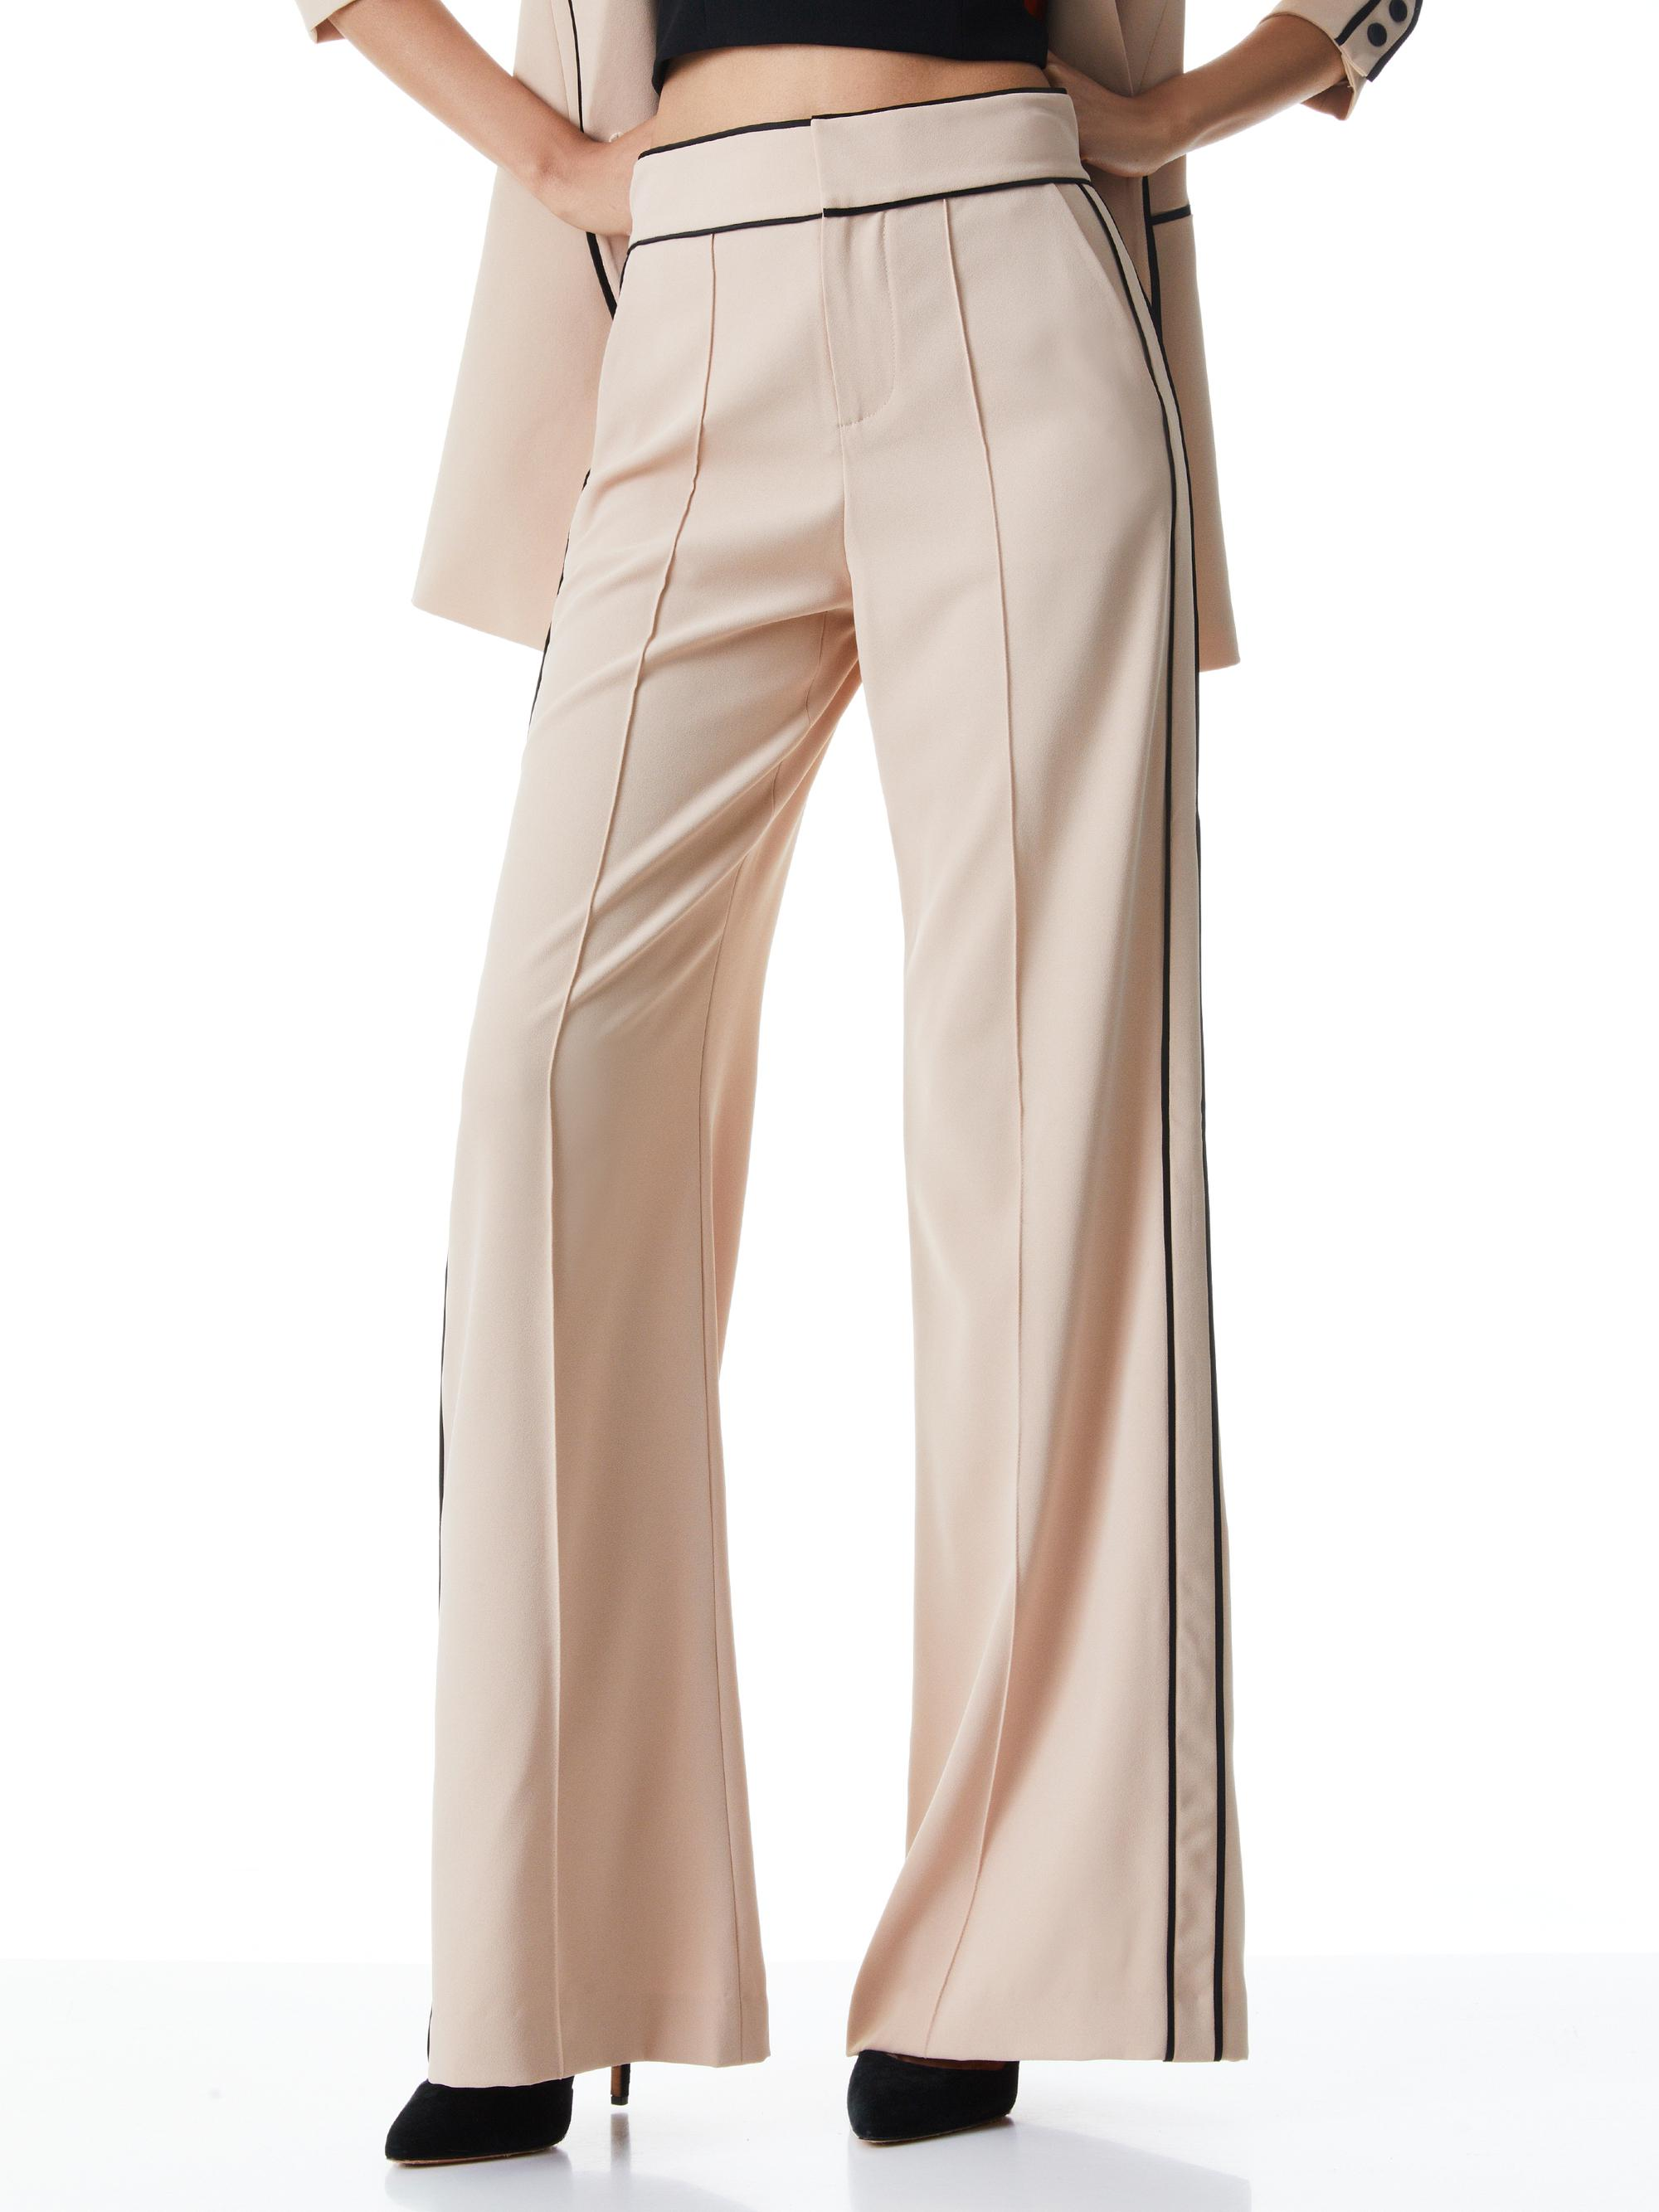 DYLAN PIPED HIGH WAIST PANT